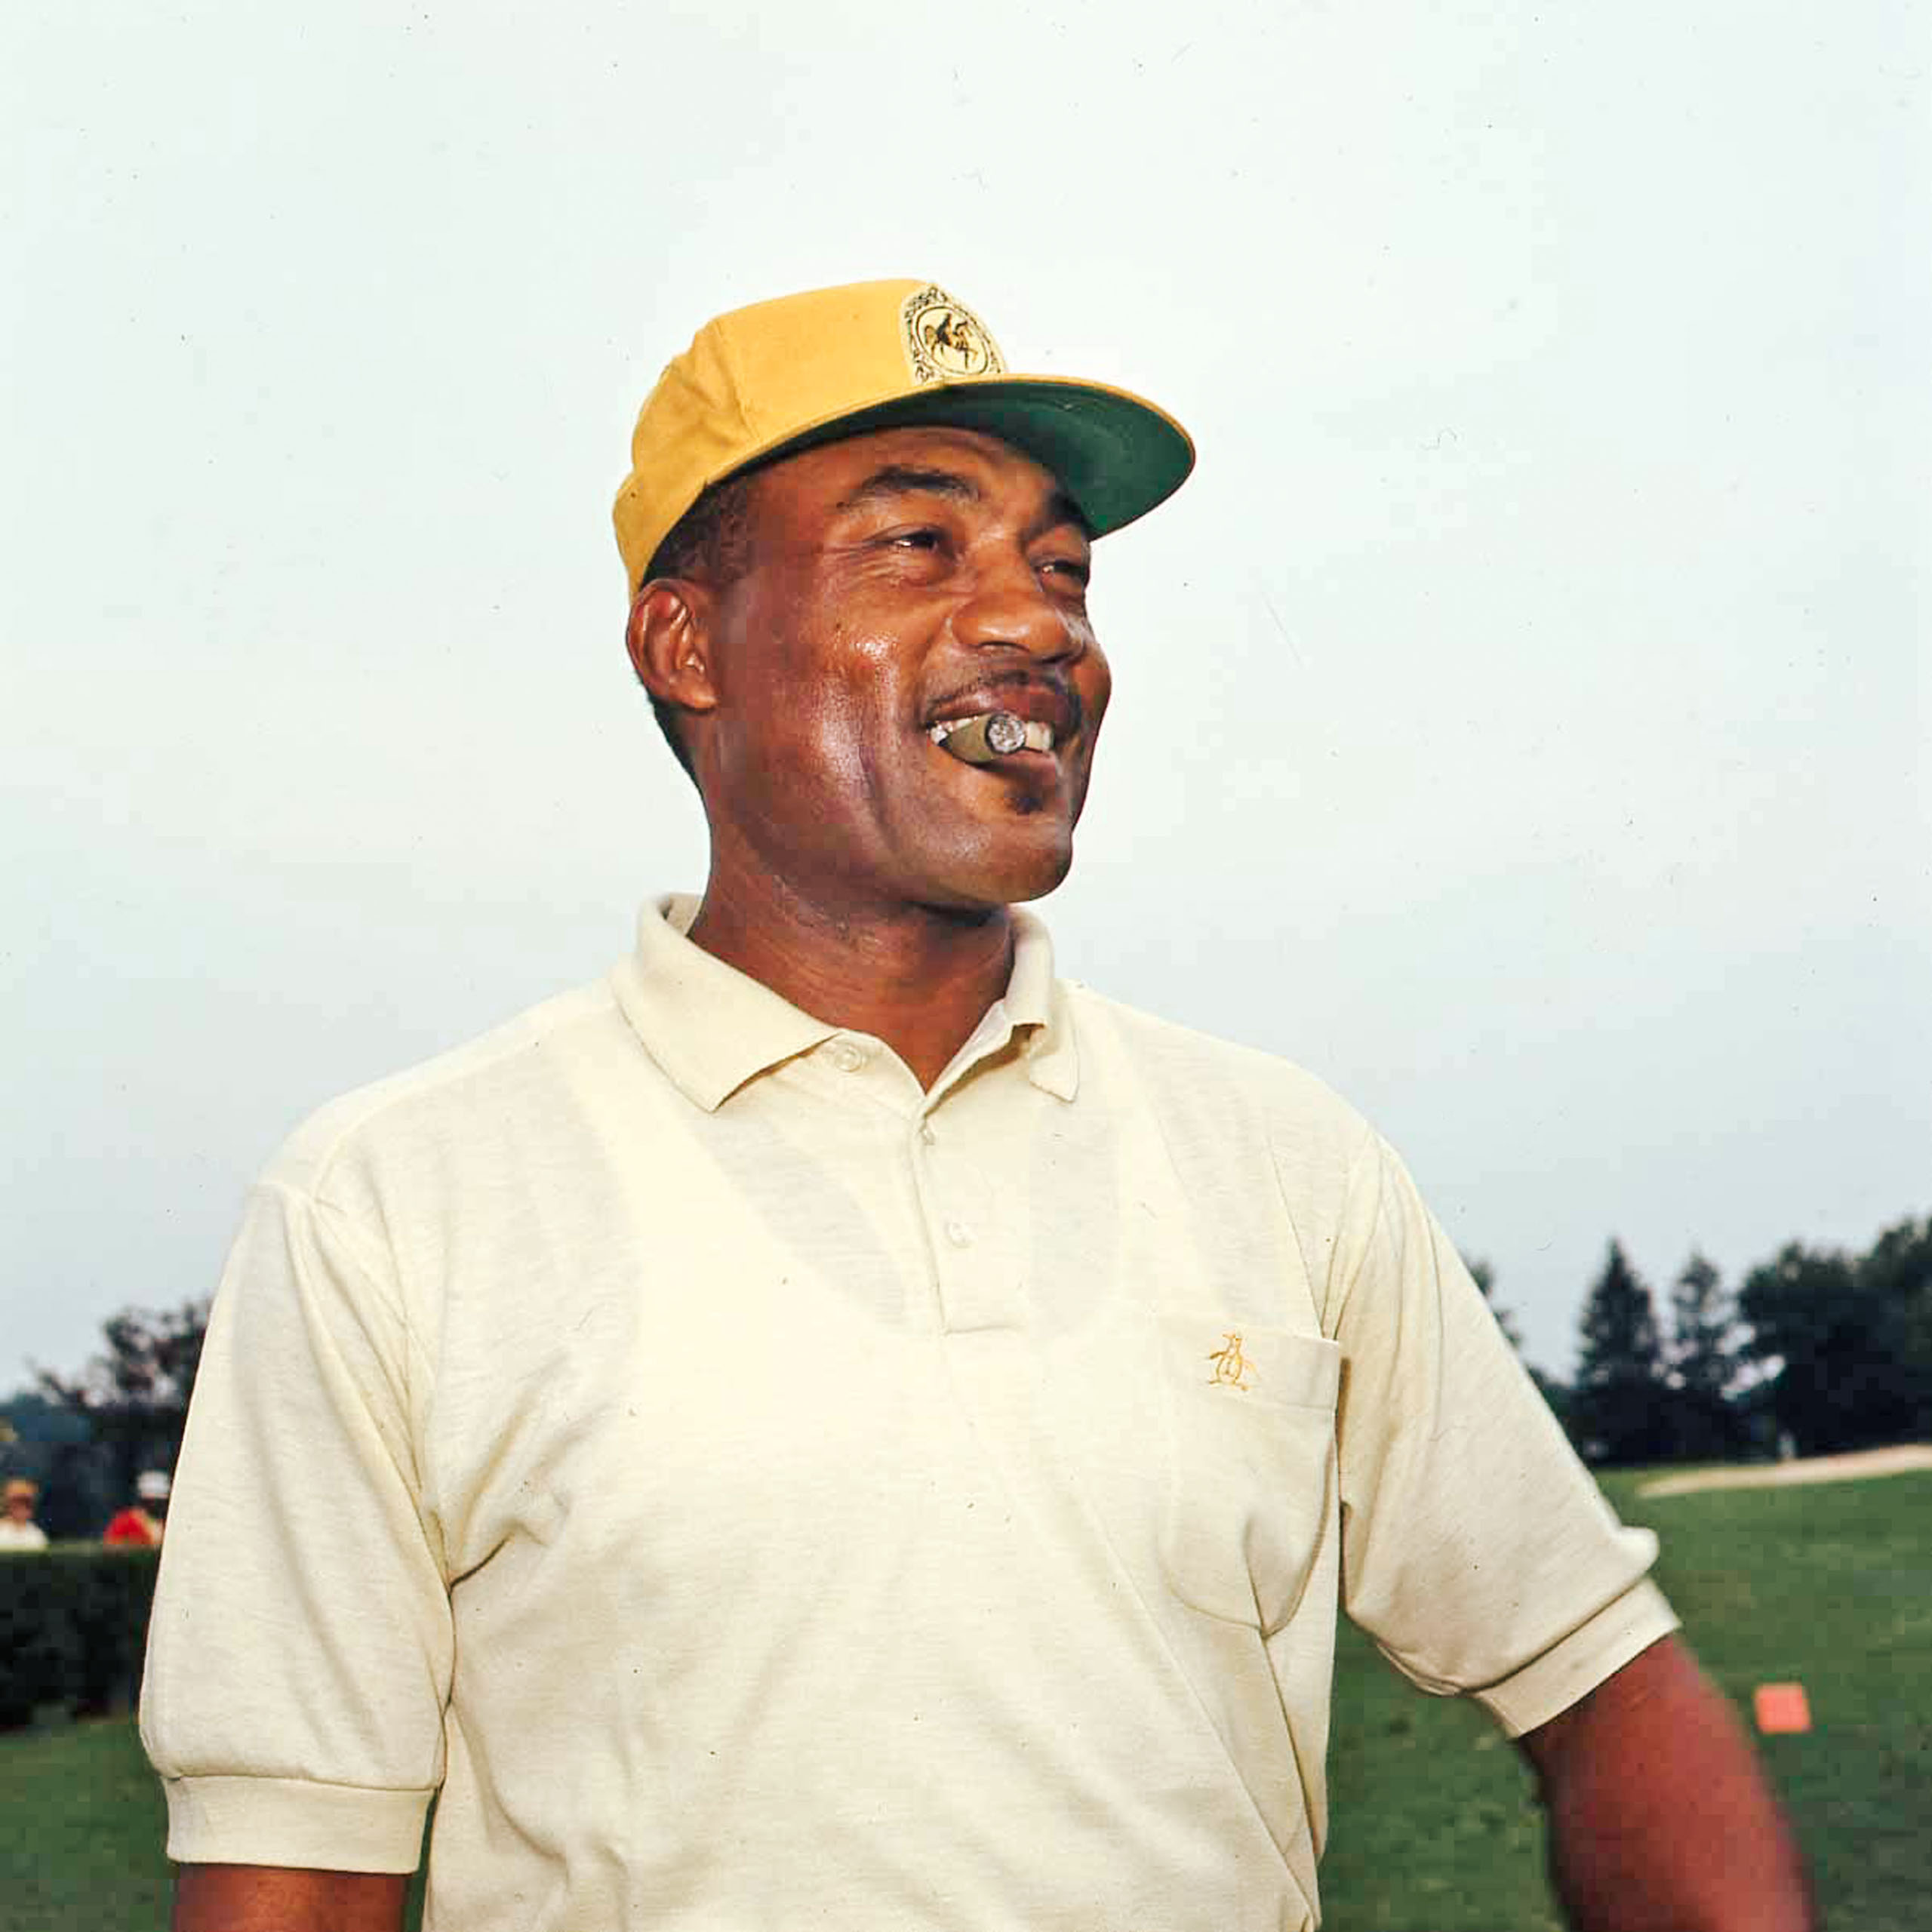 "The years of indignities that Charlie Sifford suffered on and off the course forced him to develop thick skin and an instinct to fight for what he thought was his. ""The things he went through did not go down well with him,"" Sifford's friend and fellow pro Larry Mowry told Golf Digest. ""Let's be honest: Charlie could be difficult."" So when he did smile, as in this photo the week after his first PGA Tour victory at the Greater Hartford Open, it was a genuine event. Photo: Old Golf Images/SBM"